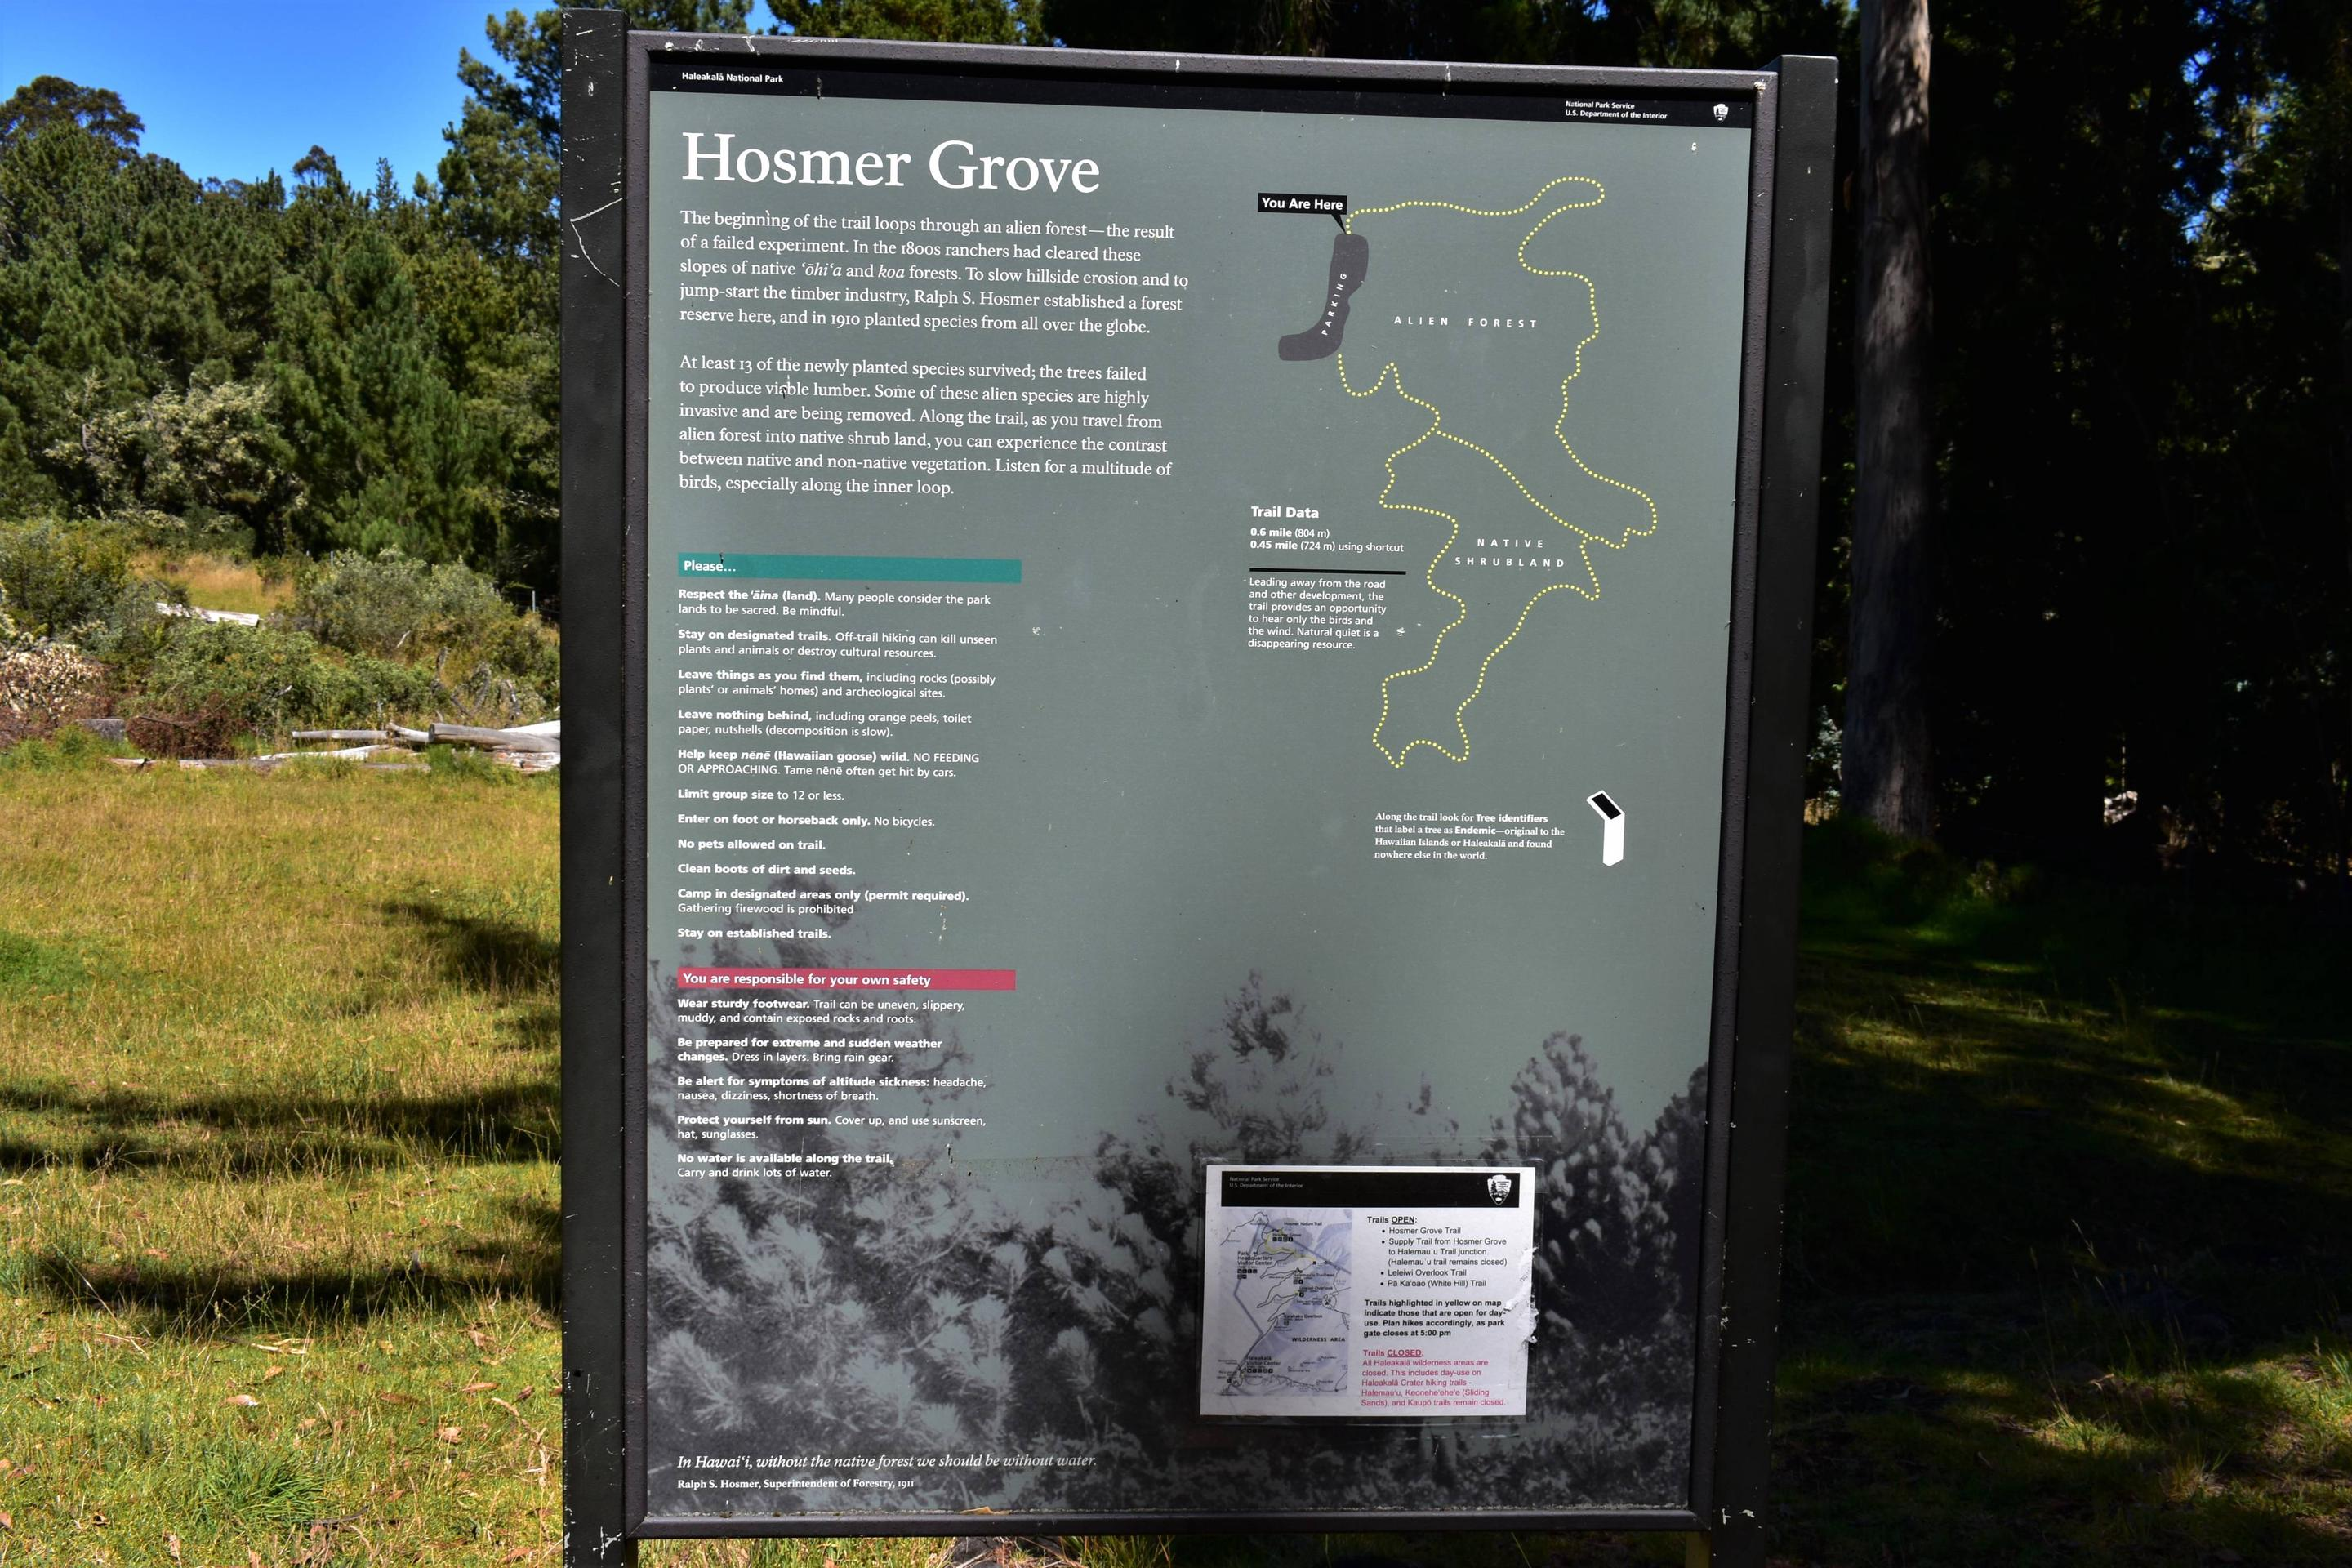 InformationInformation board